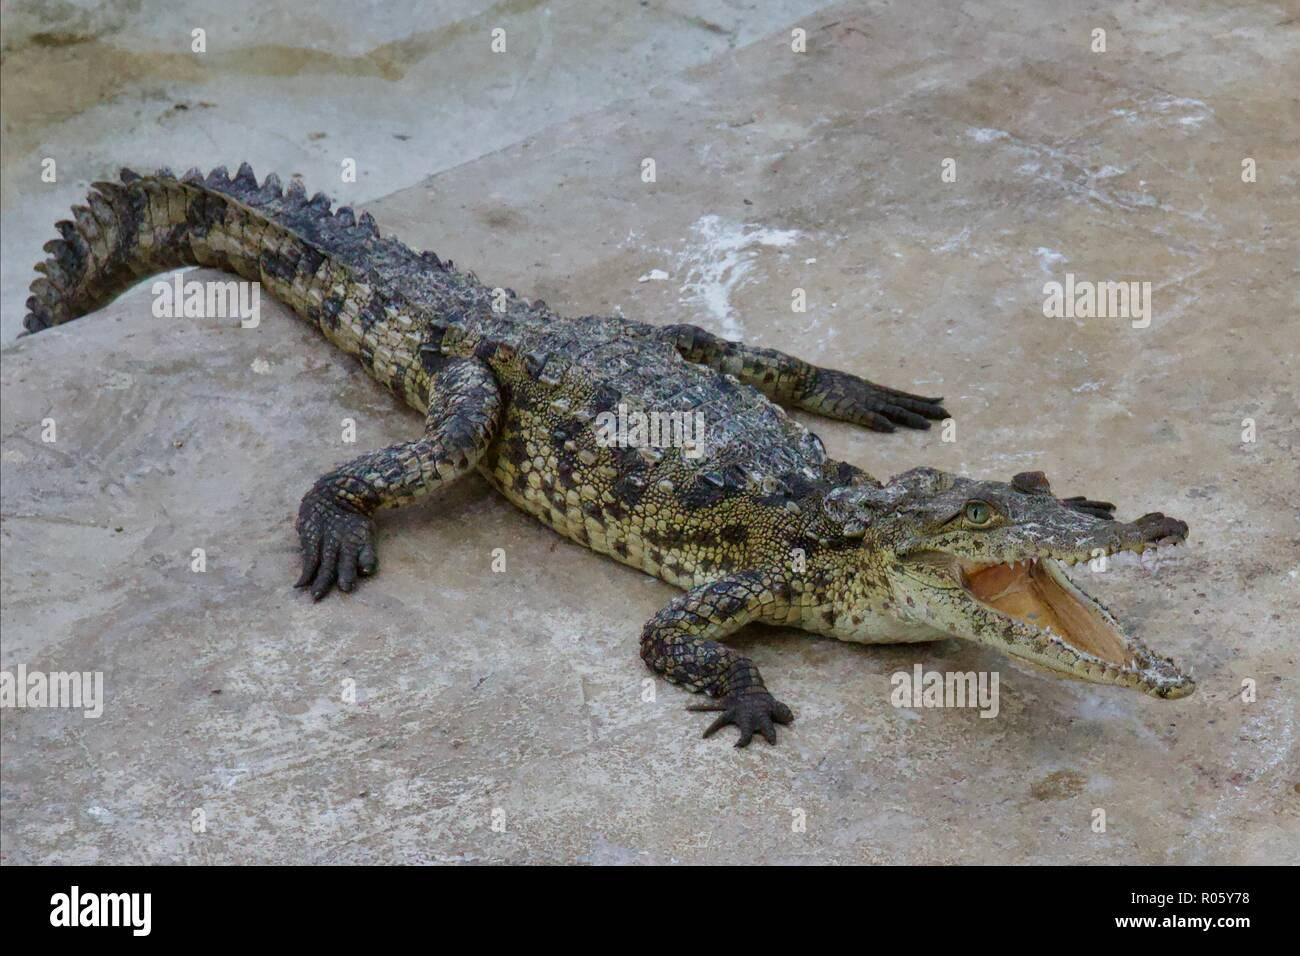 Crocodile (crocodylus acutus) with its mouth open to sweat out of it, bearing it's crocodile teeth - Stock Image